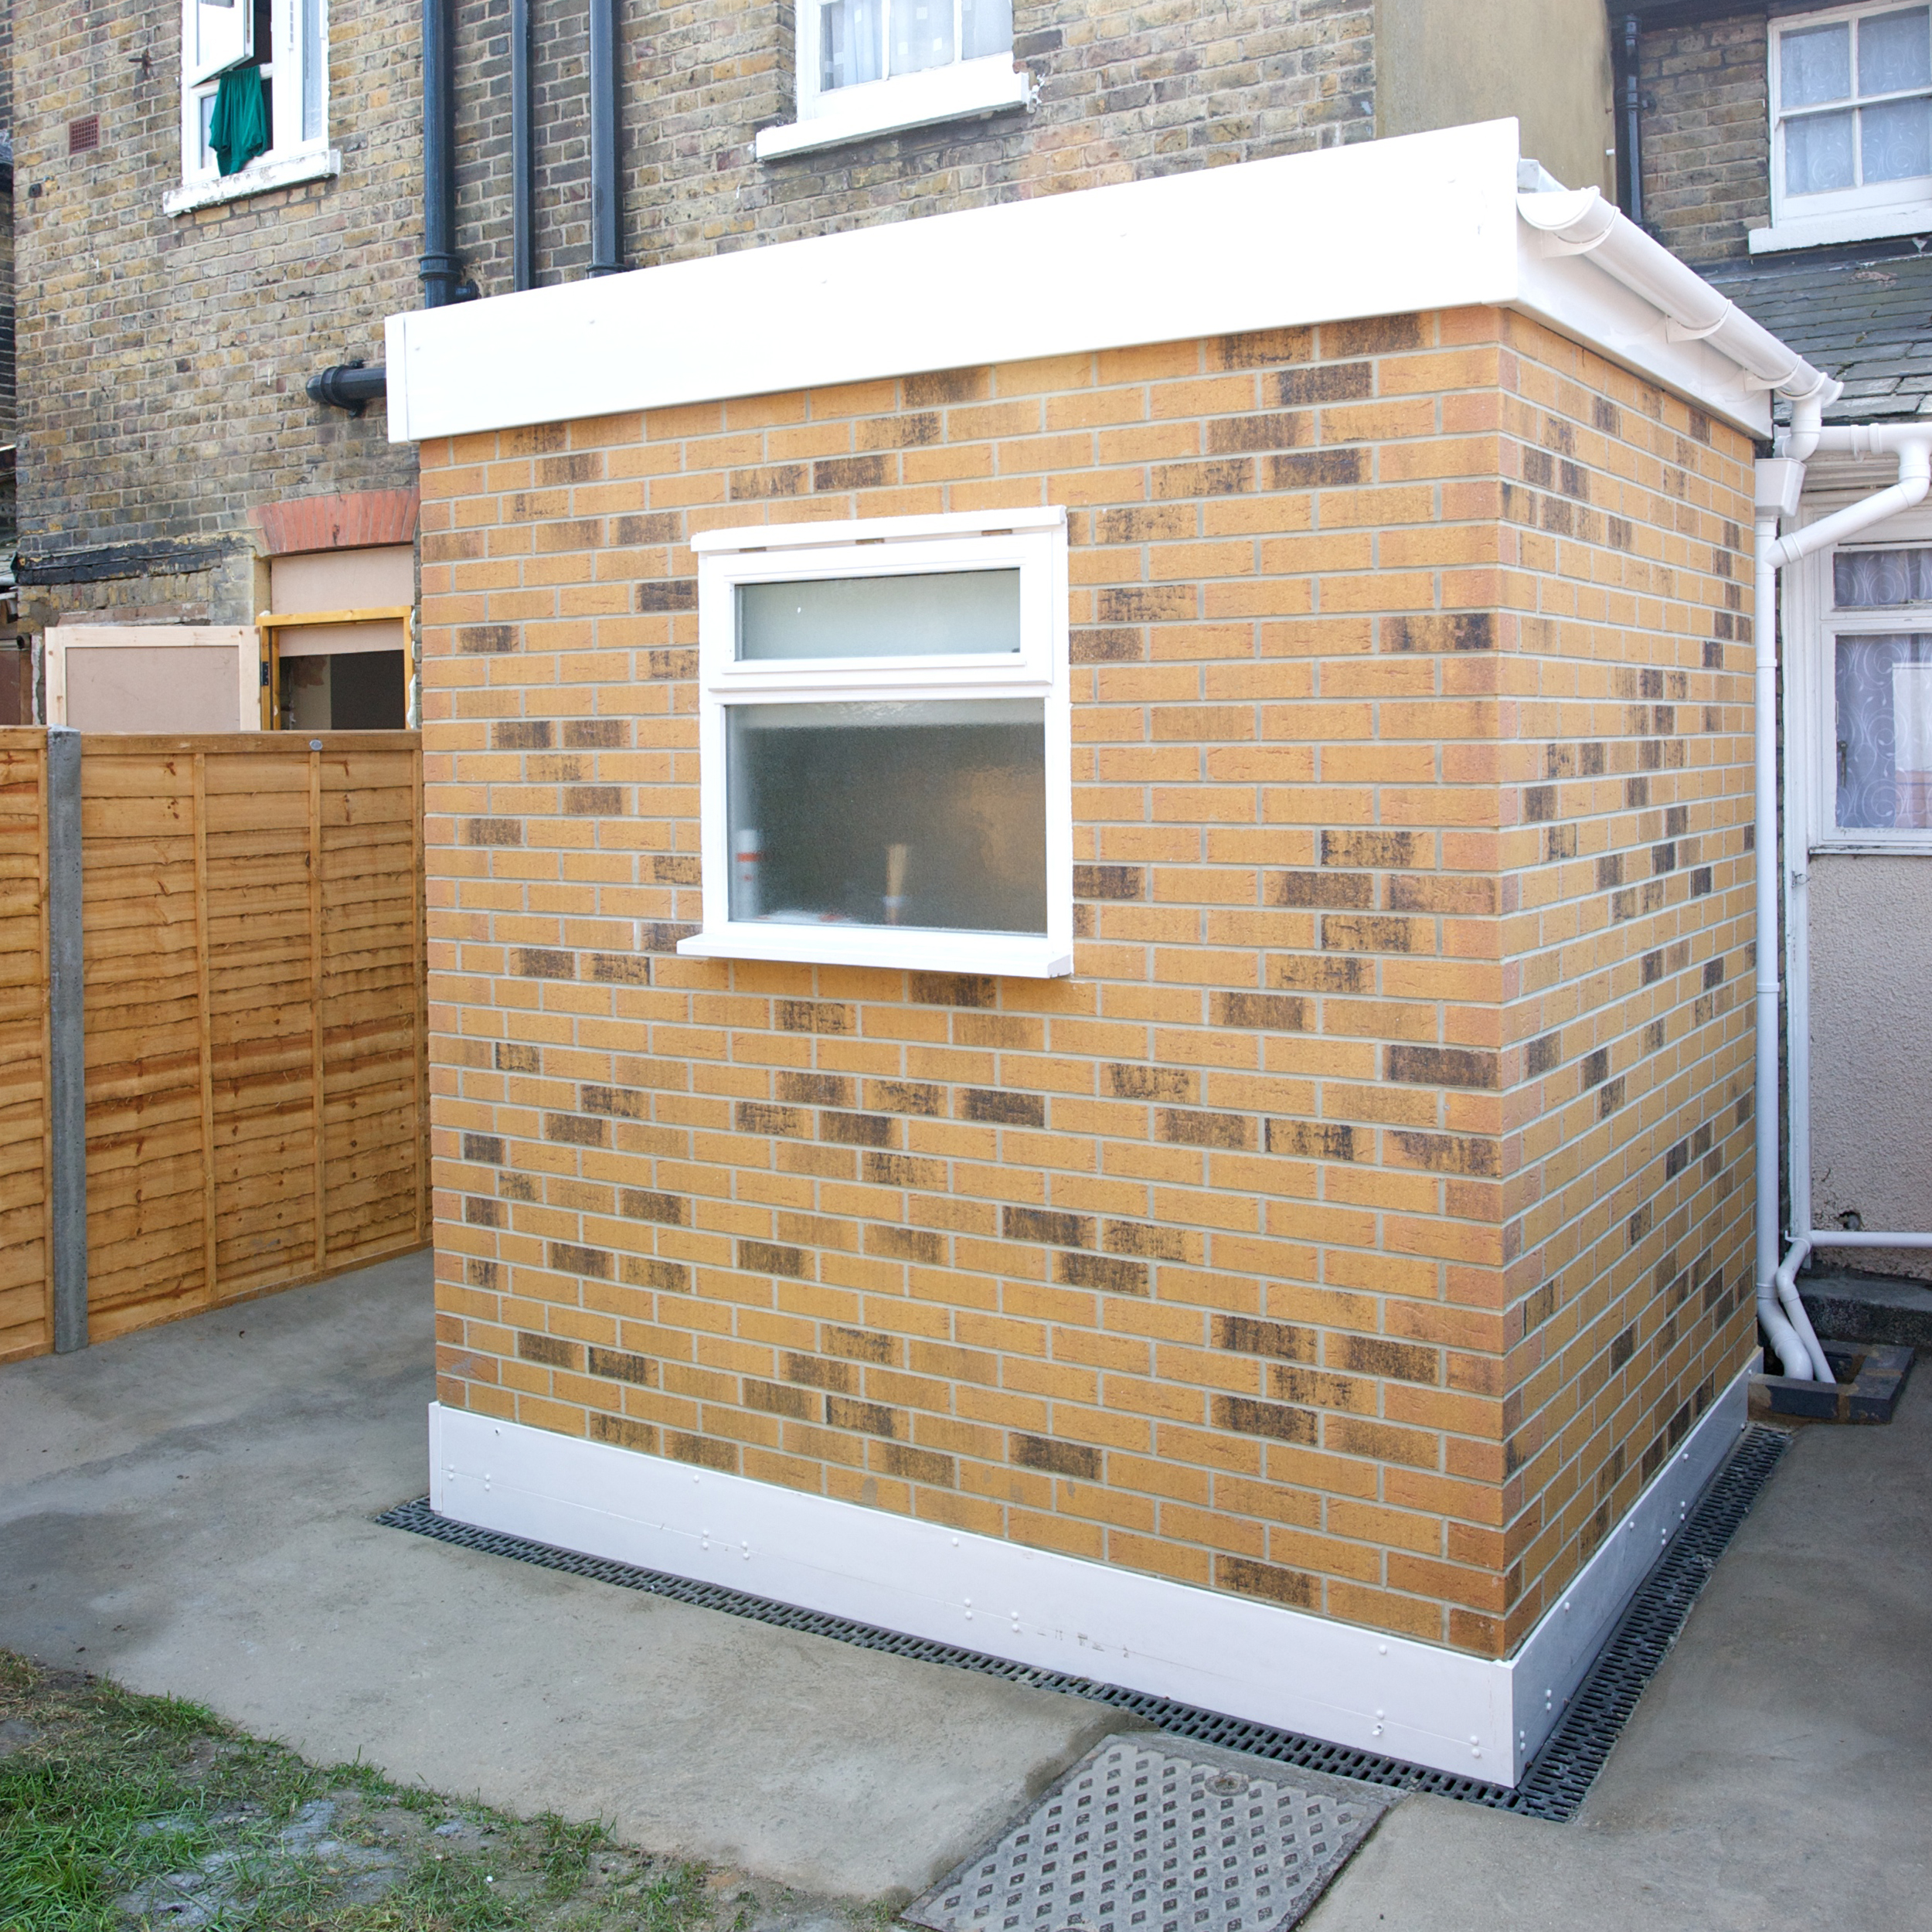 Modular room added to a residential property as part of a bathroom extension project